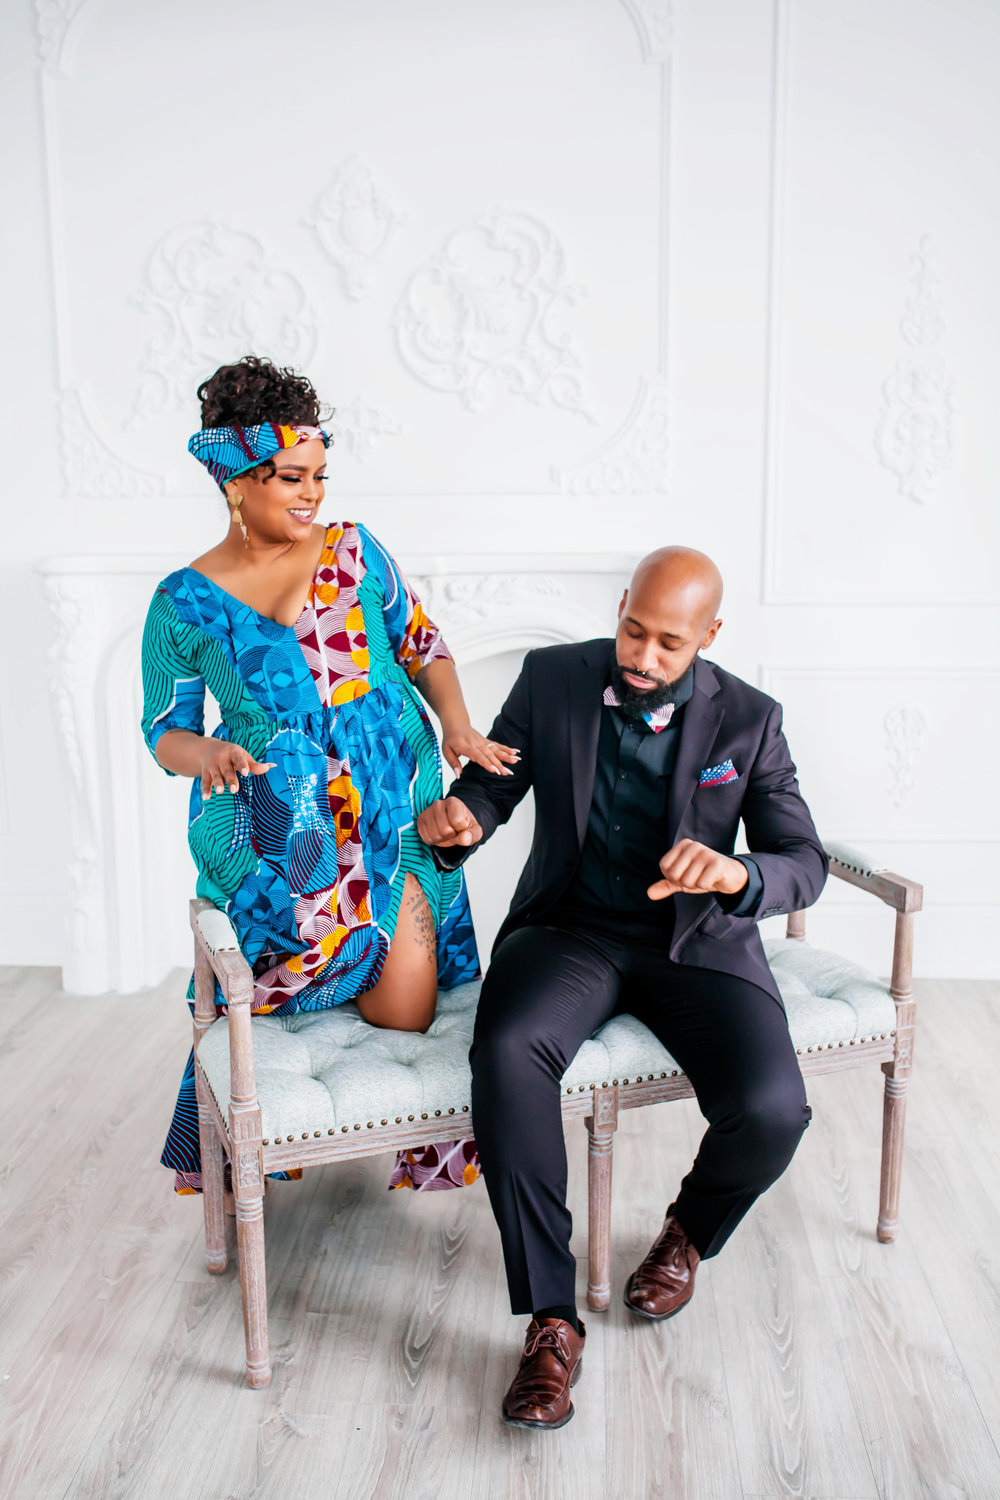 African Inspired Engagement Shoot Toronto Engagement Photographer Mint Room Studios Toronto Engagement Photography Indoors Karimah Gheddai Photography